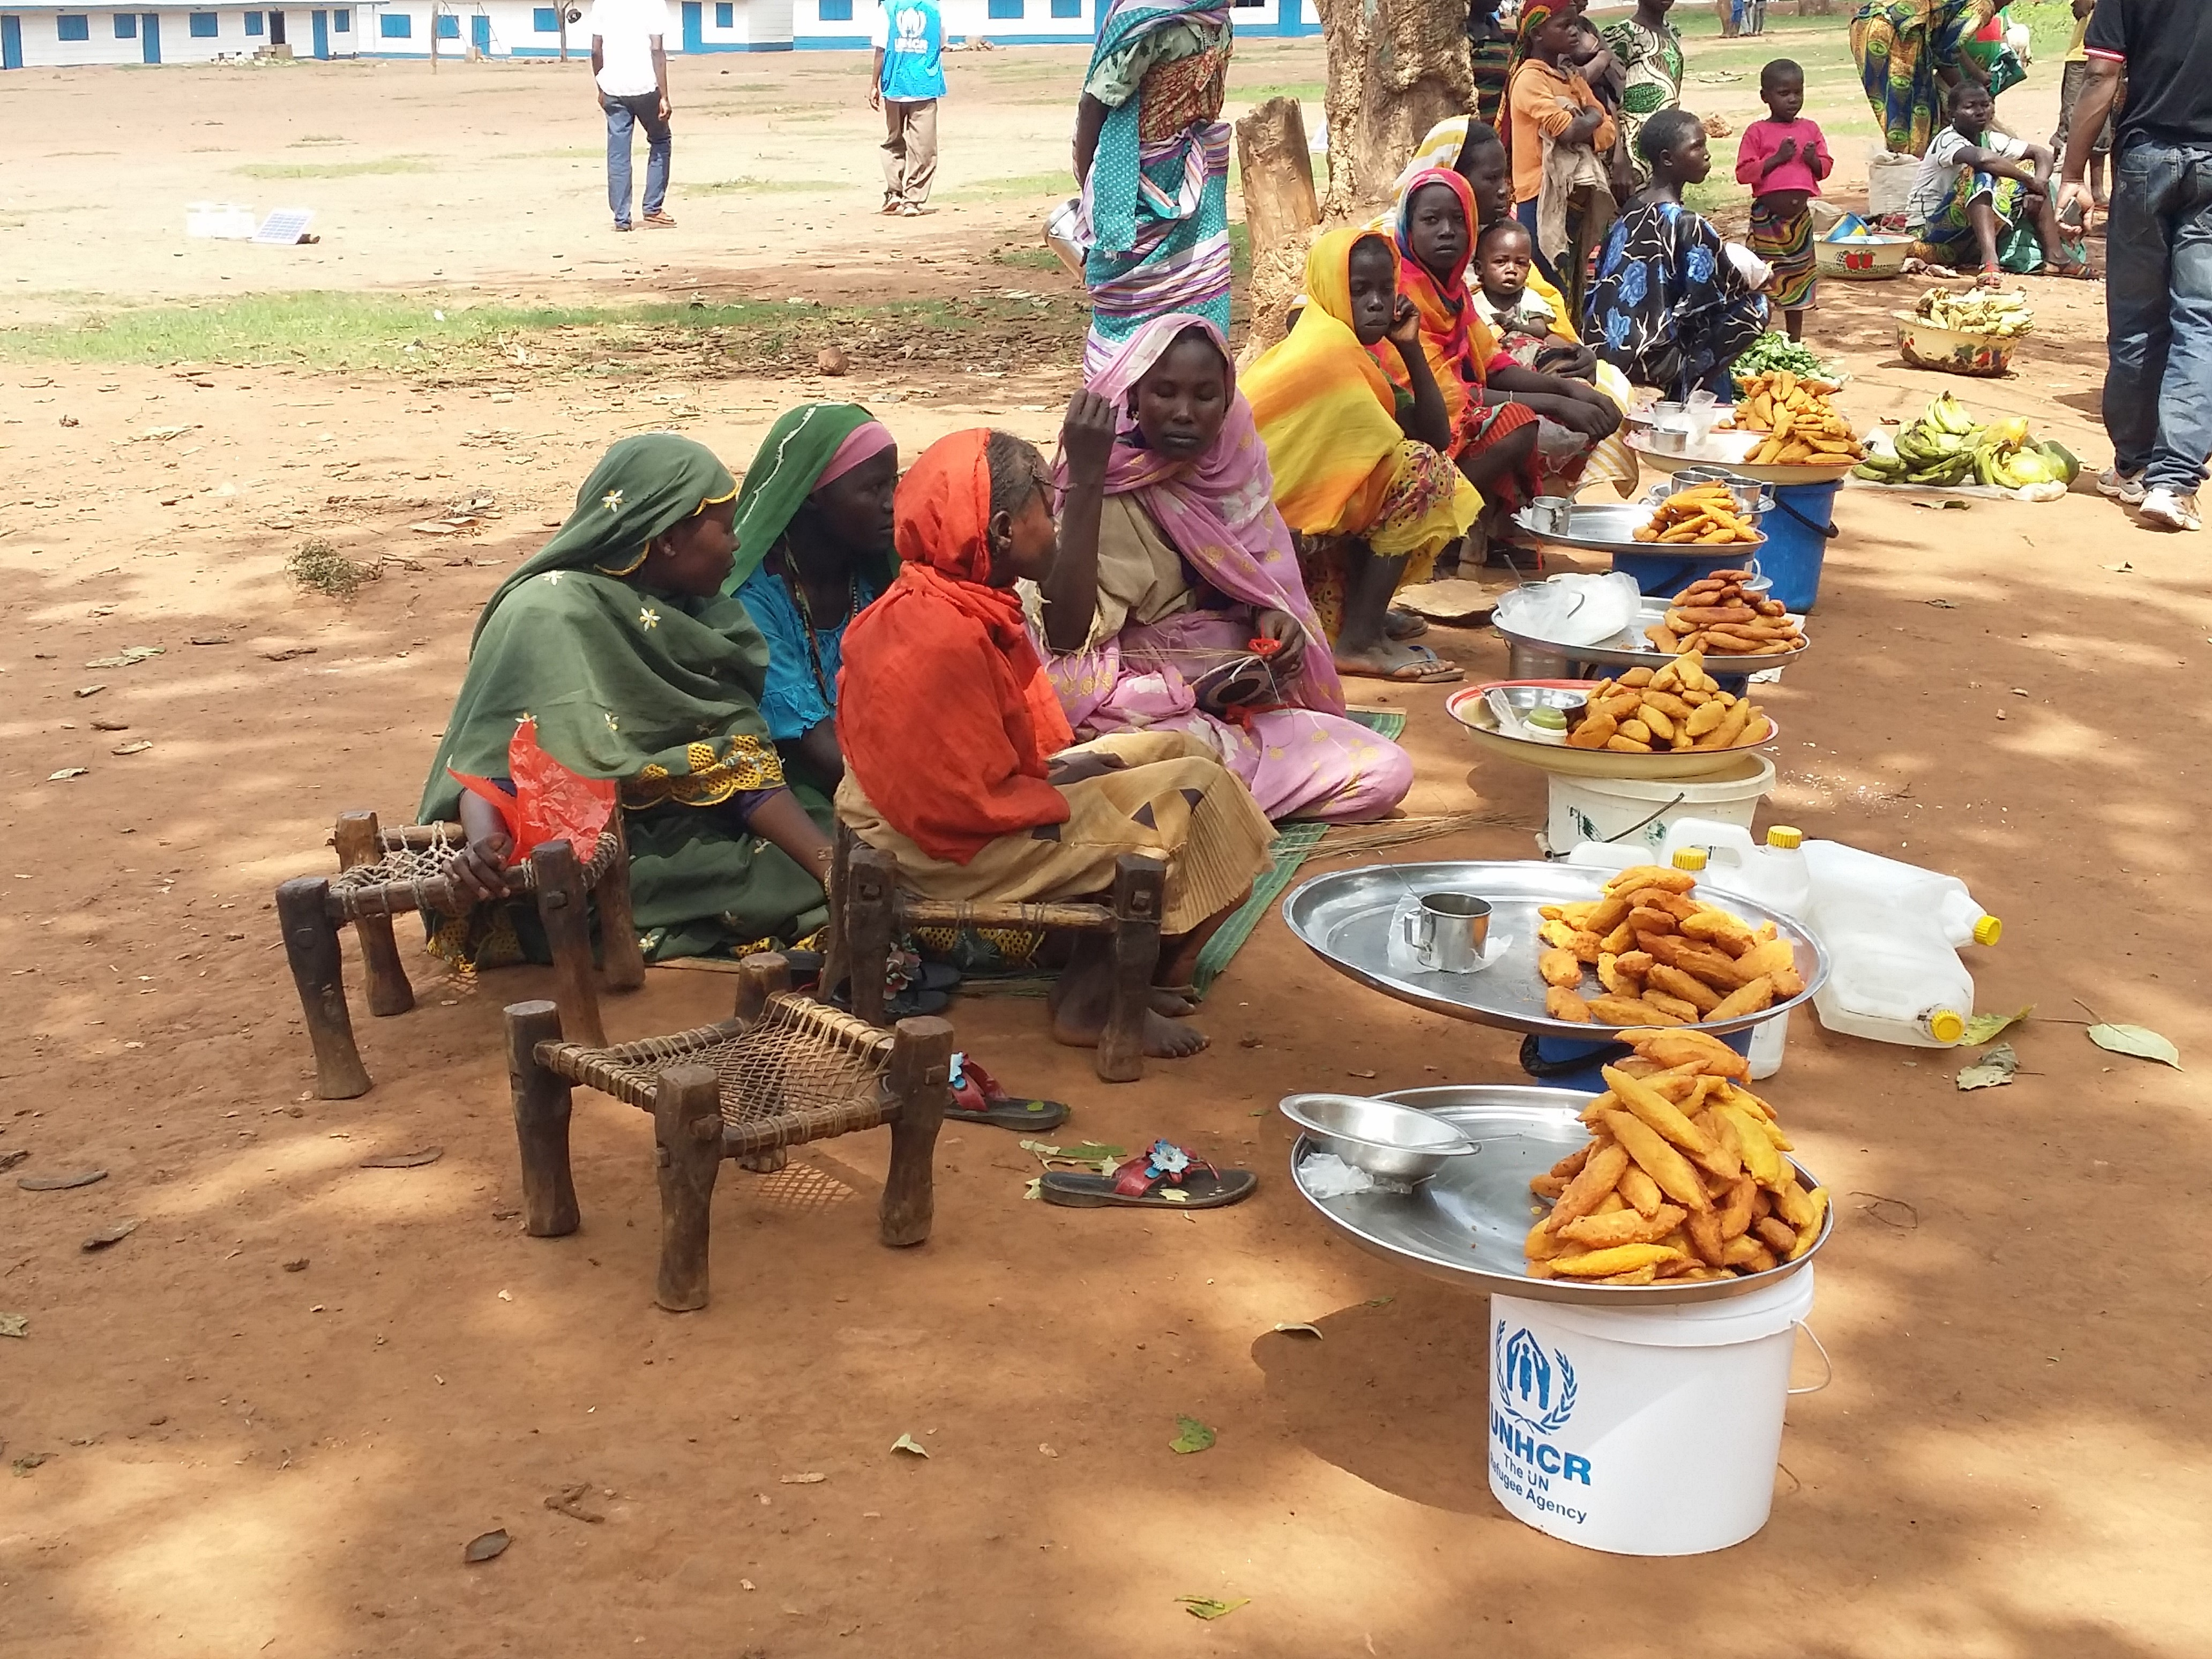 Sudanese refugee women selling food in UNHCR refugee camp in Bambari, Central African Republic  /UNHCR/Lisa van Hogerlinden